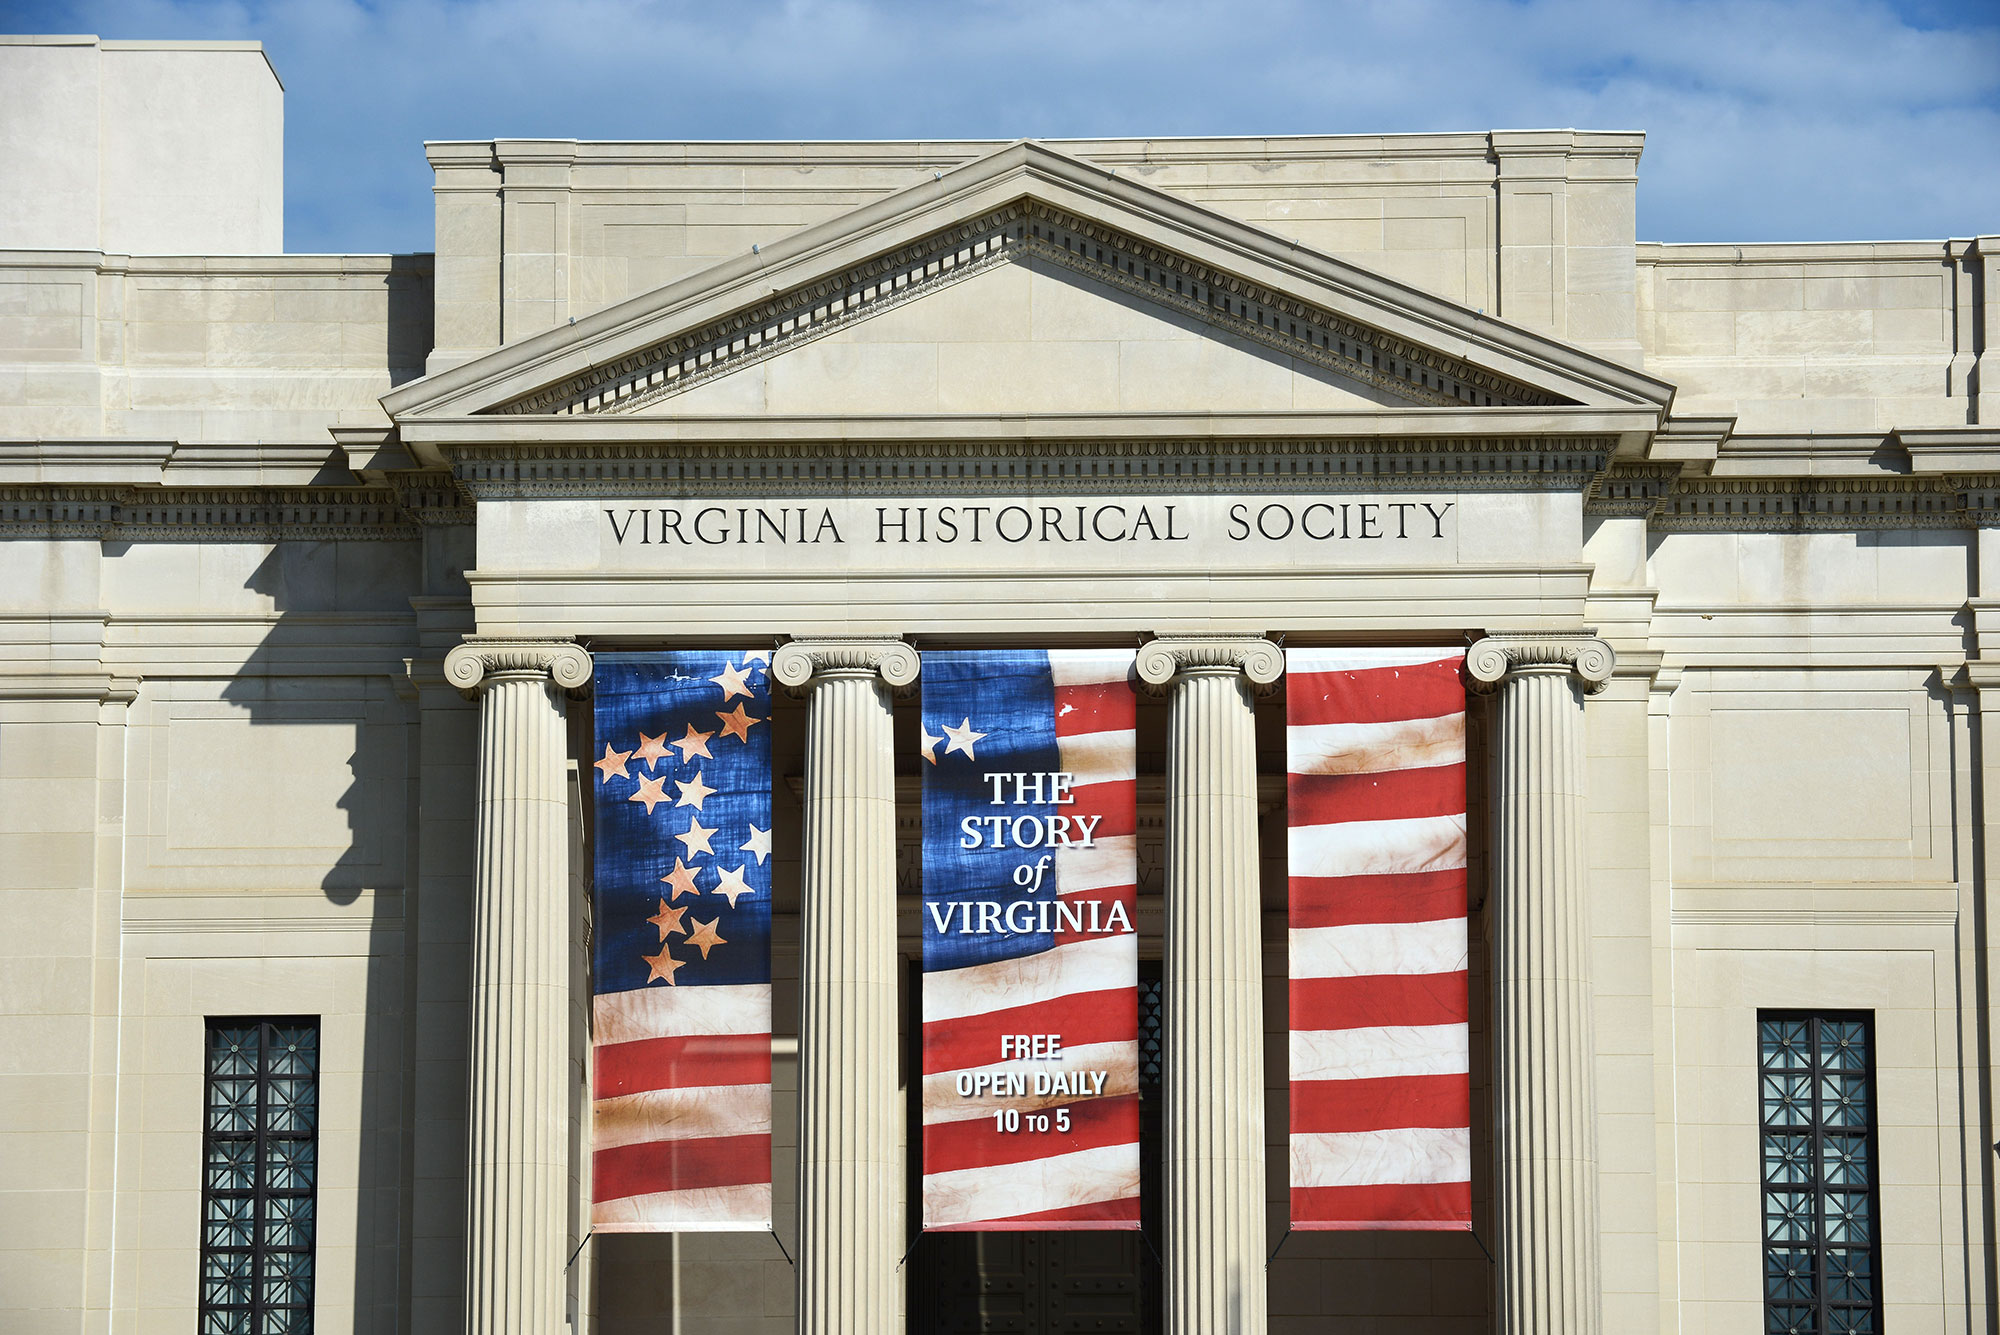 Story of Virginia Entrance Banner